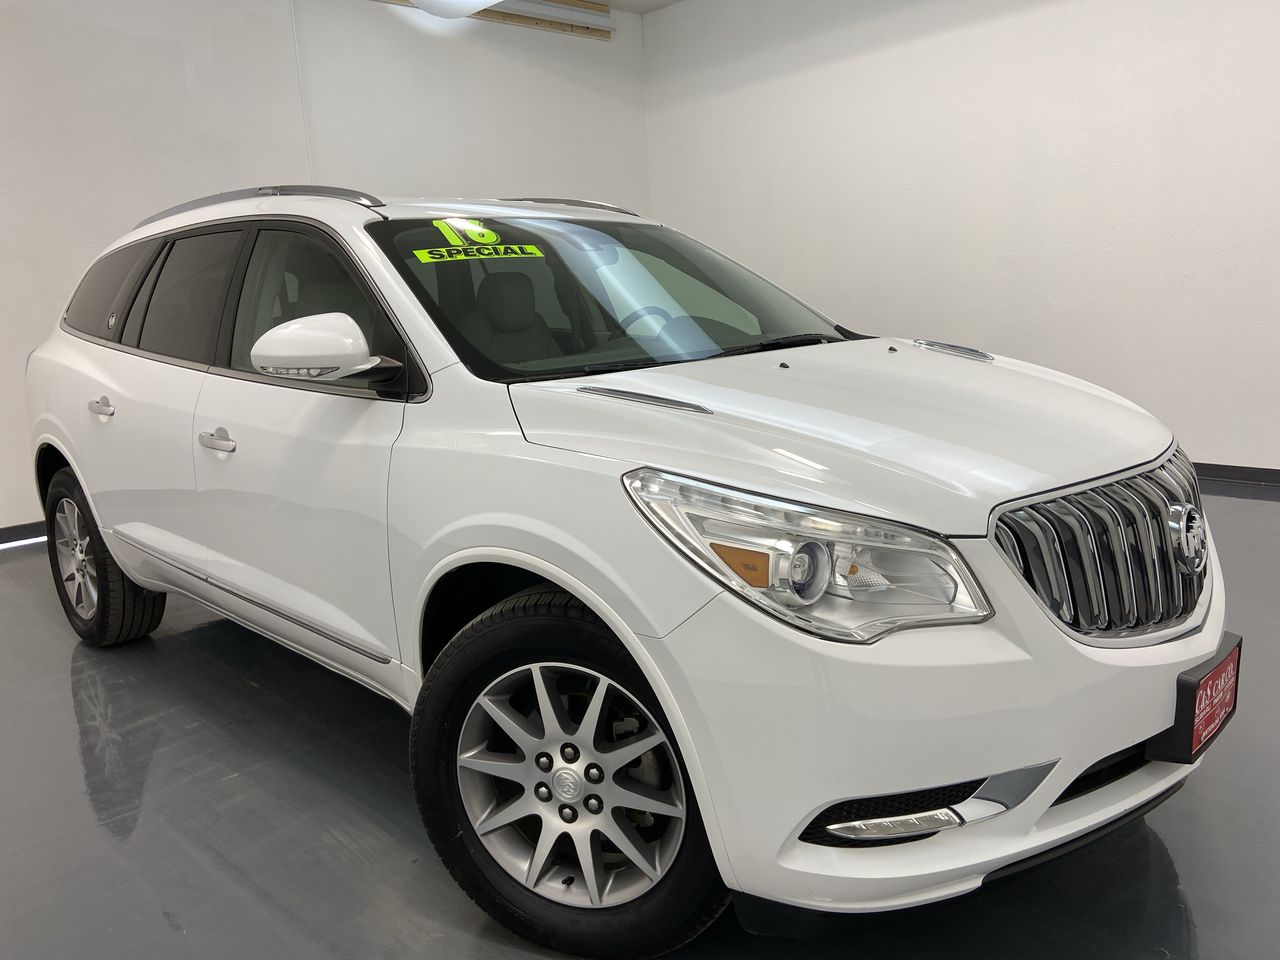 2016 Buick Enclave 4D SUV FWD  - 16412  - C & S Car Company